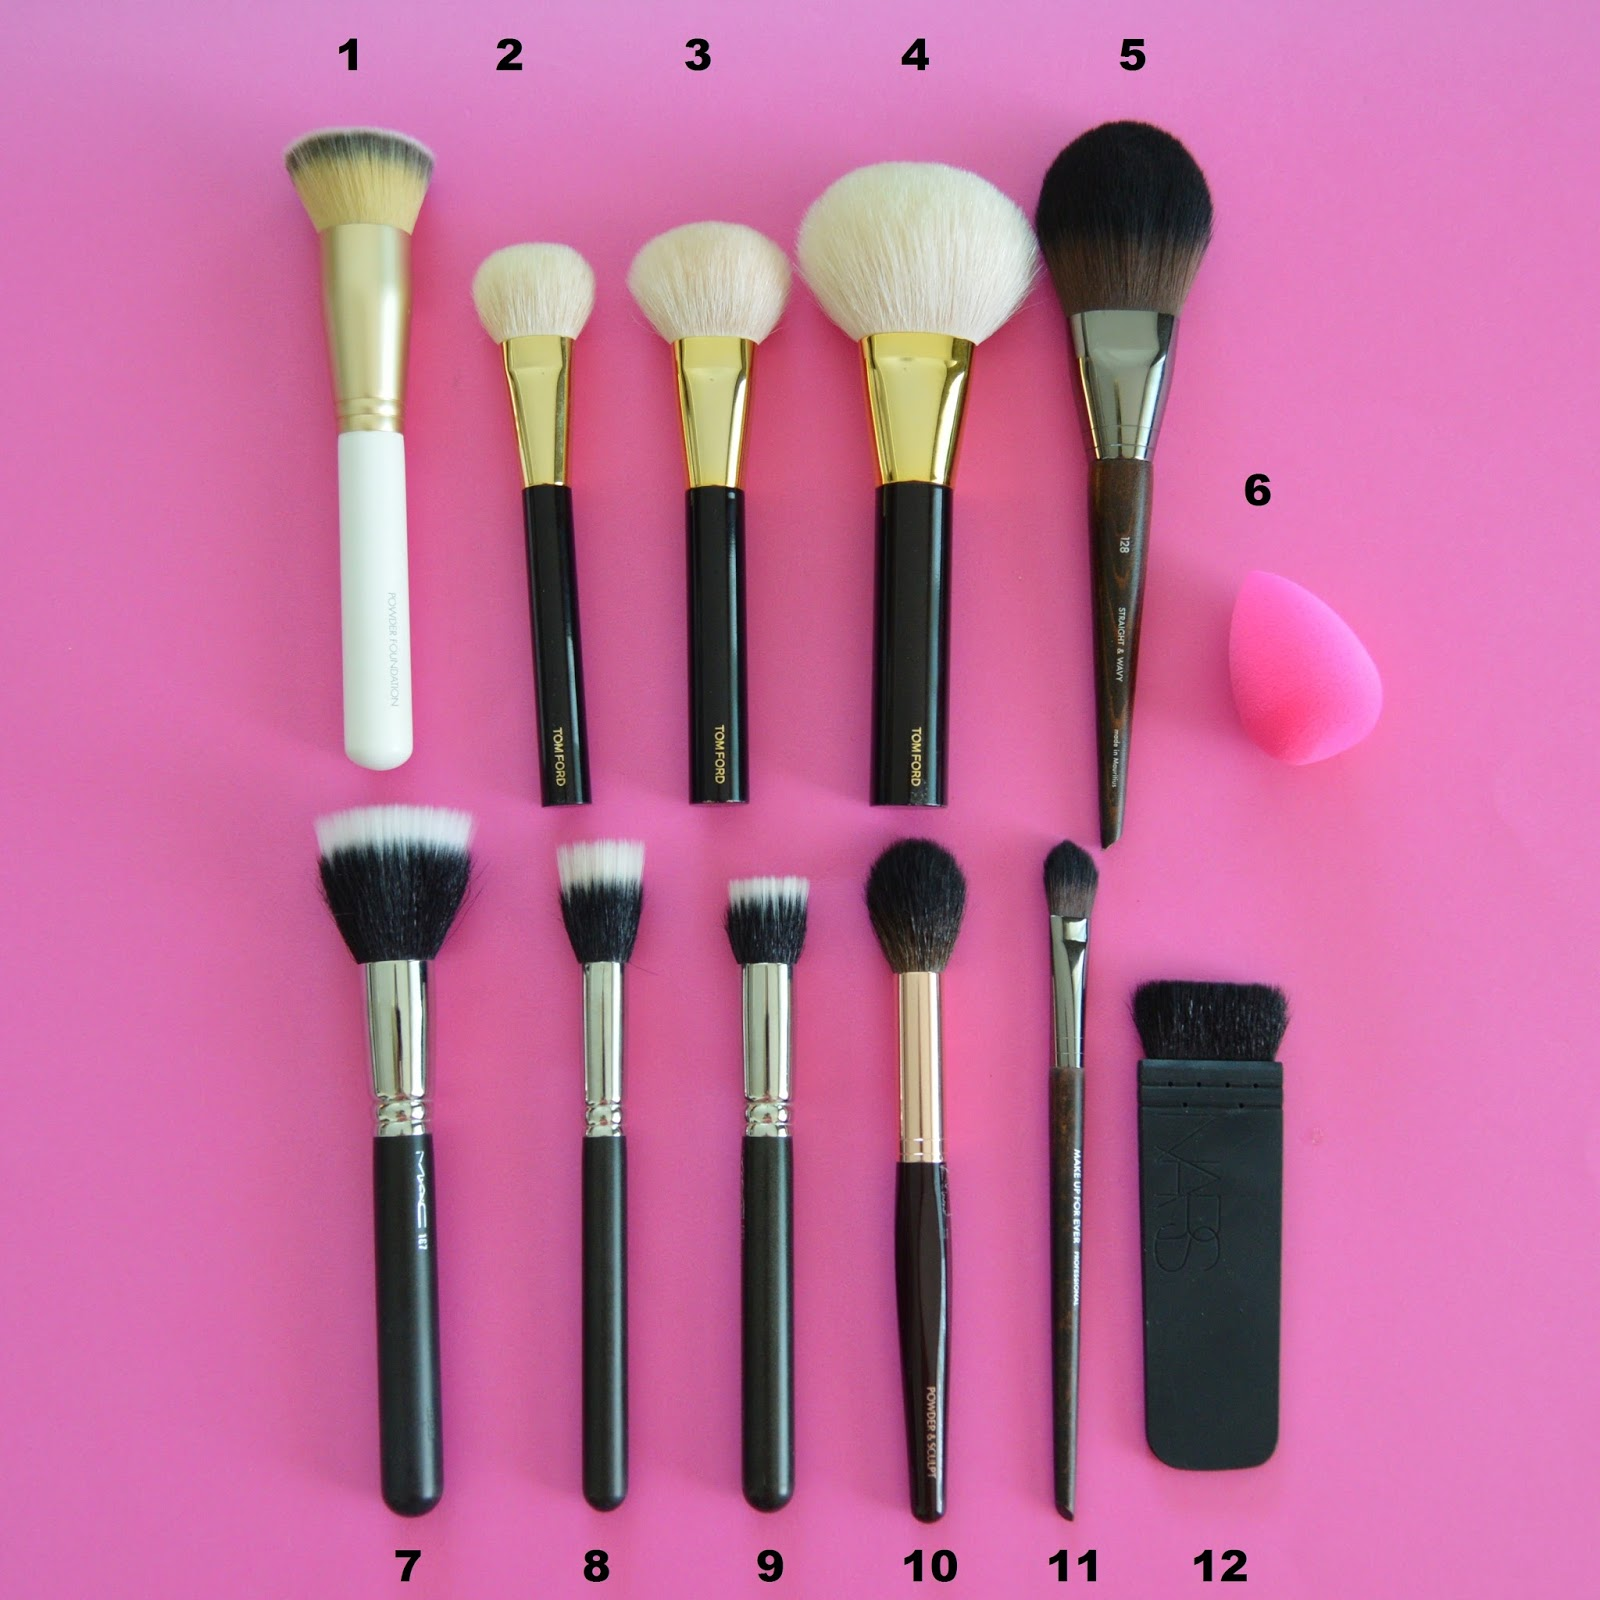 Pics of : Makeup Brushes Equivalent To Mac